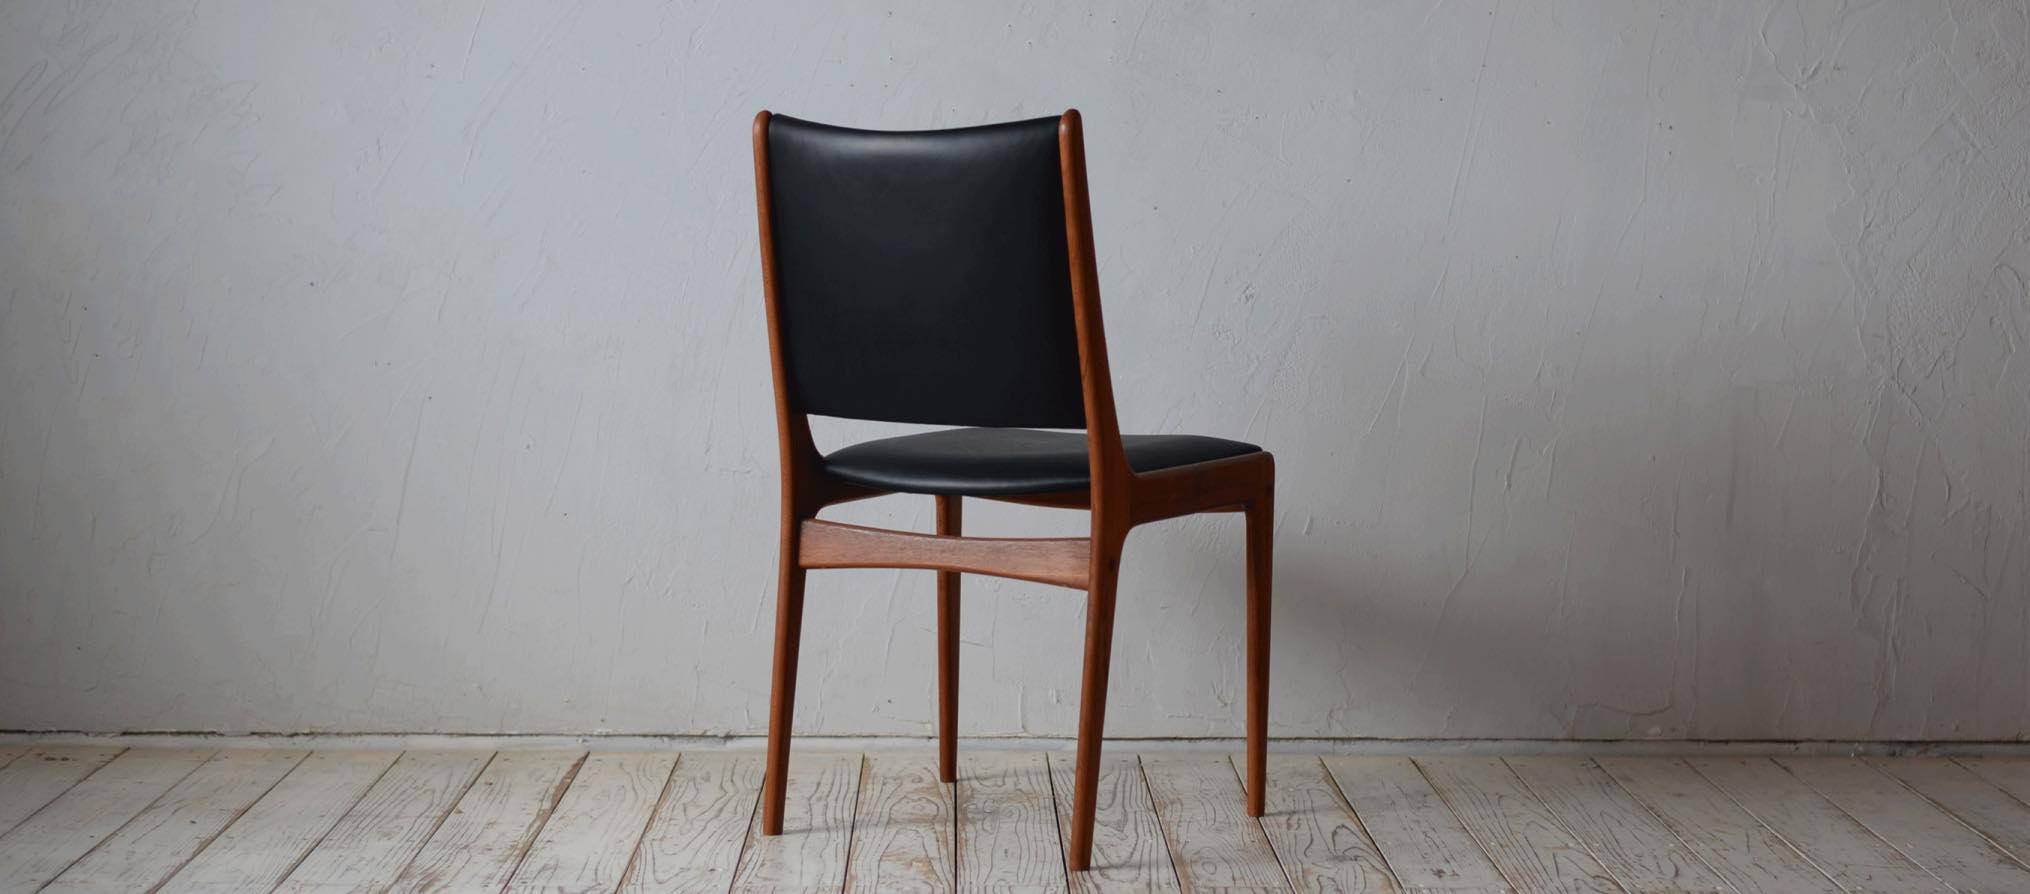 Johannes Andersen Dining Chair 910D614F_デザイン